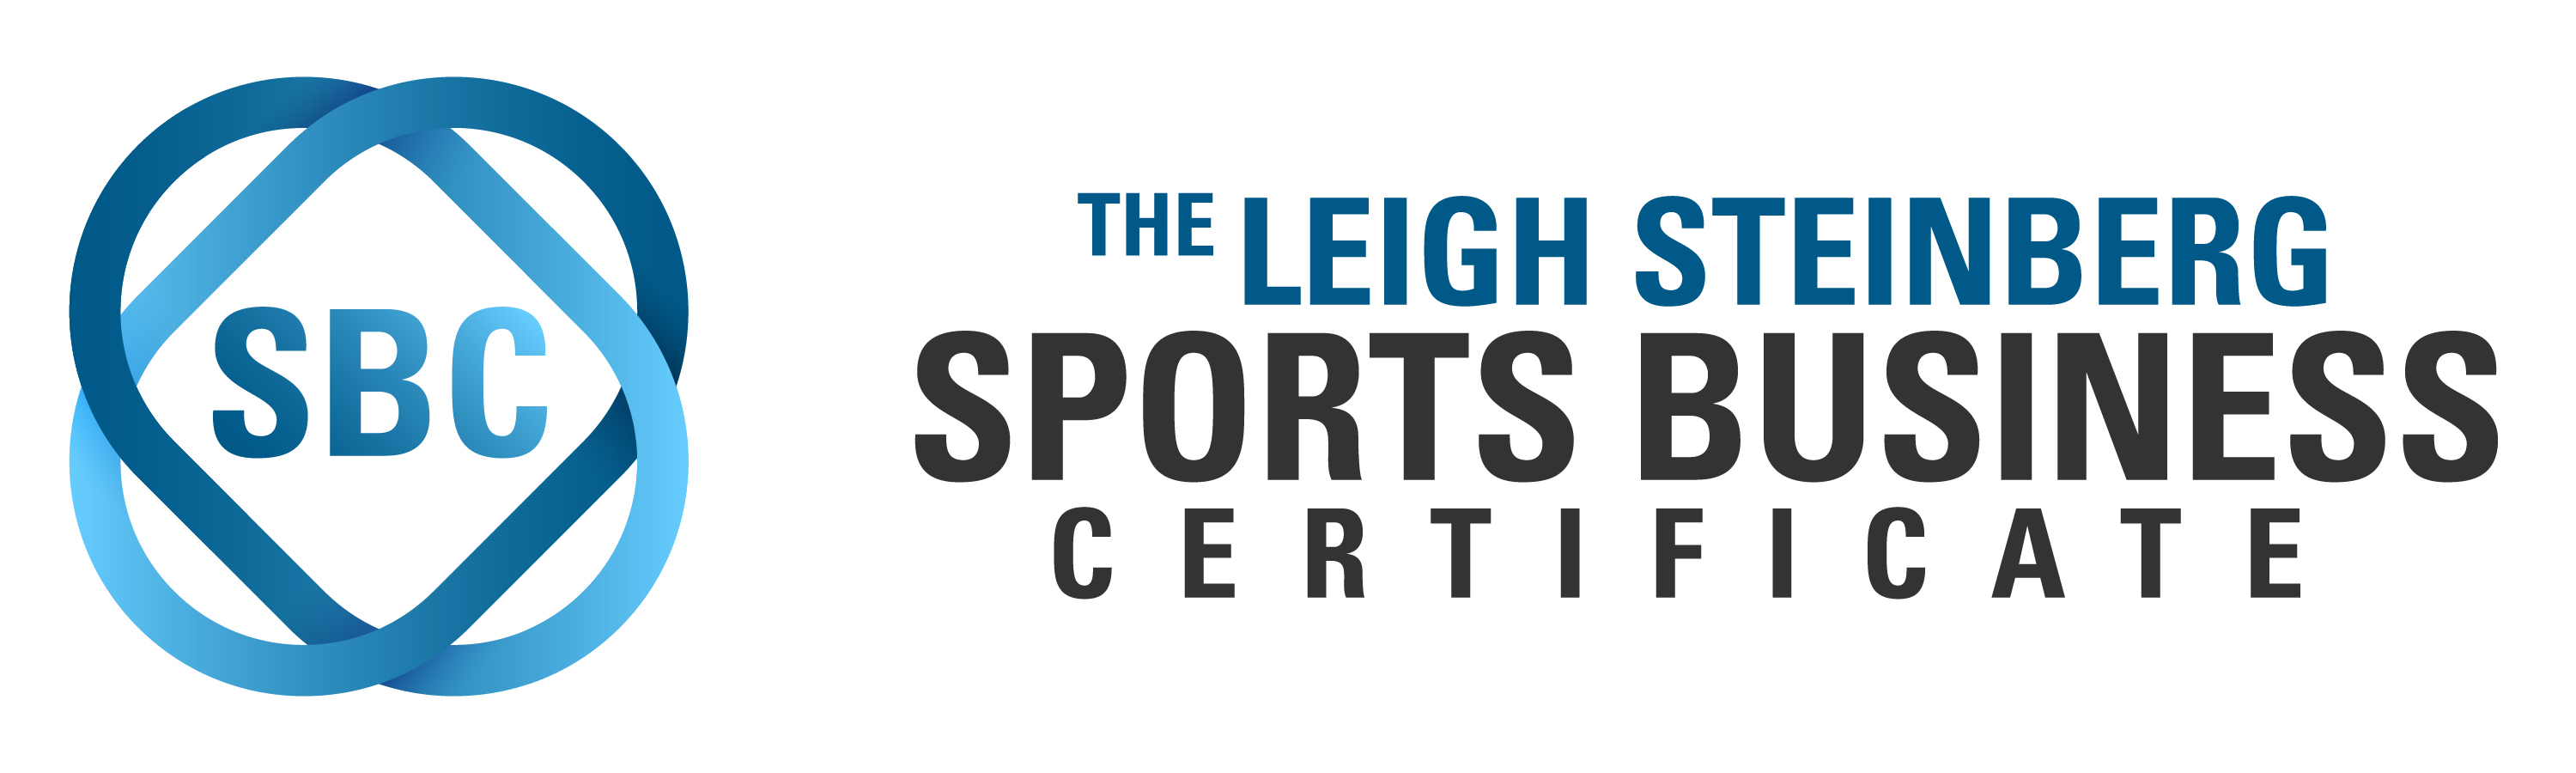 The Leigh Steinberg Online Courses